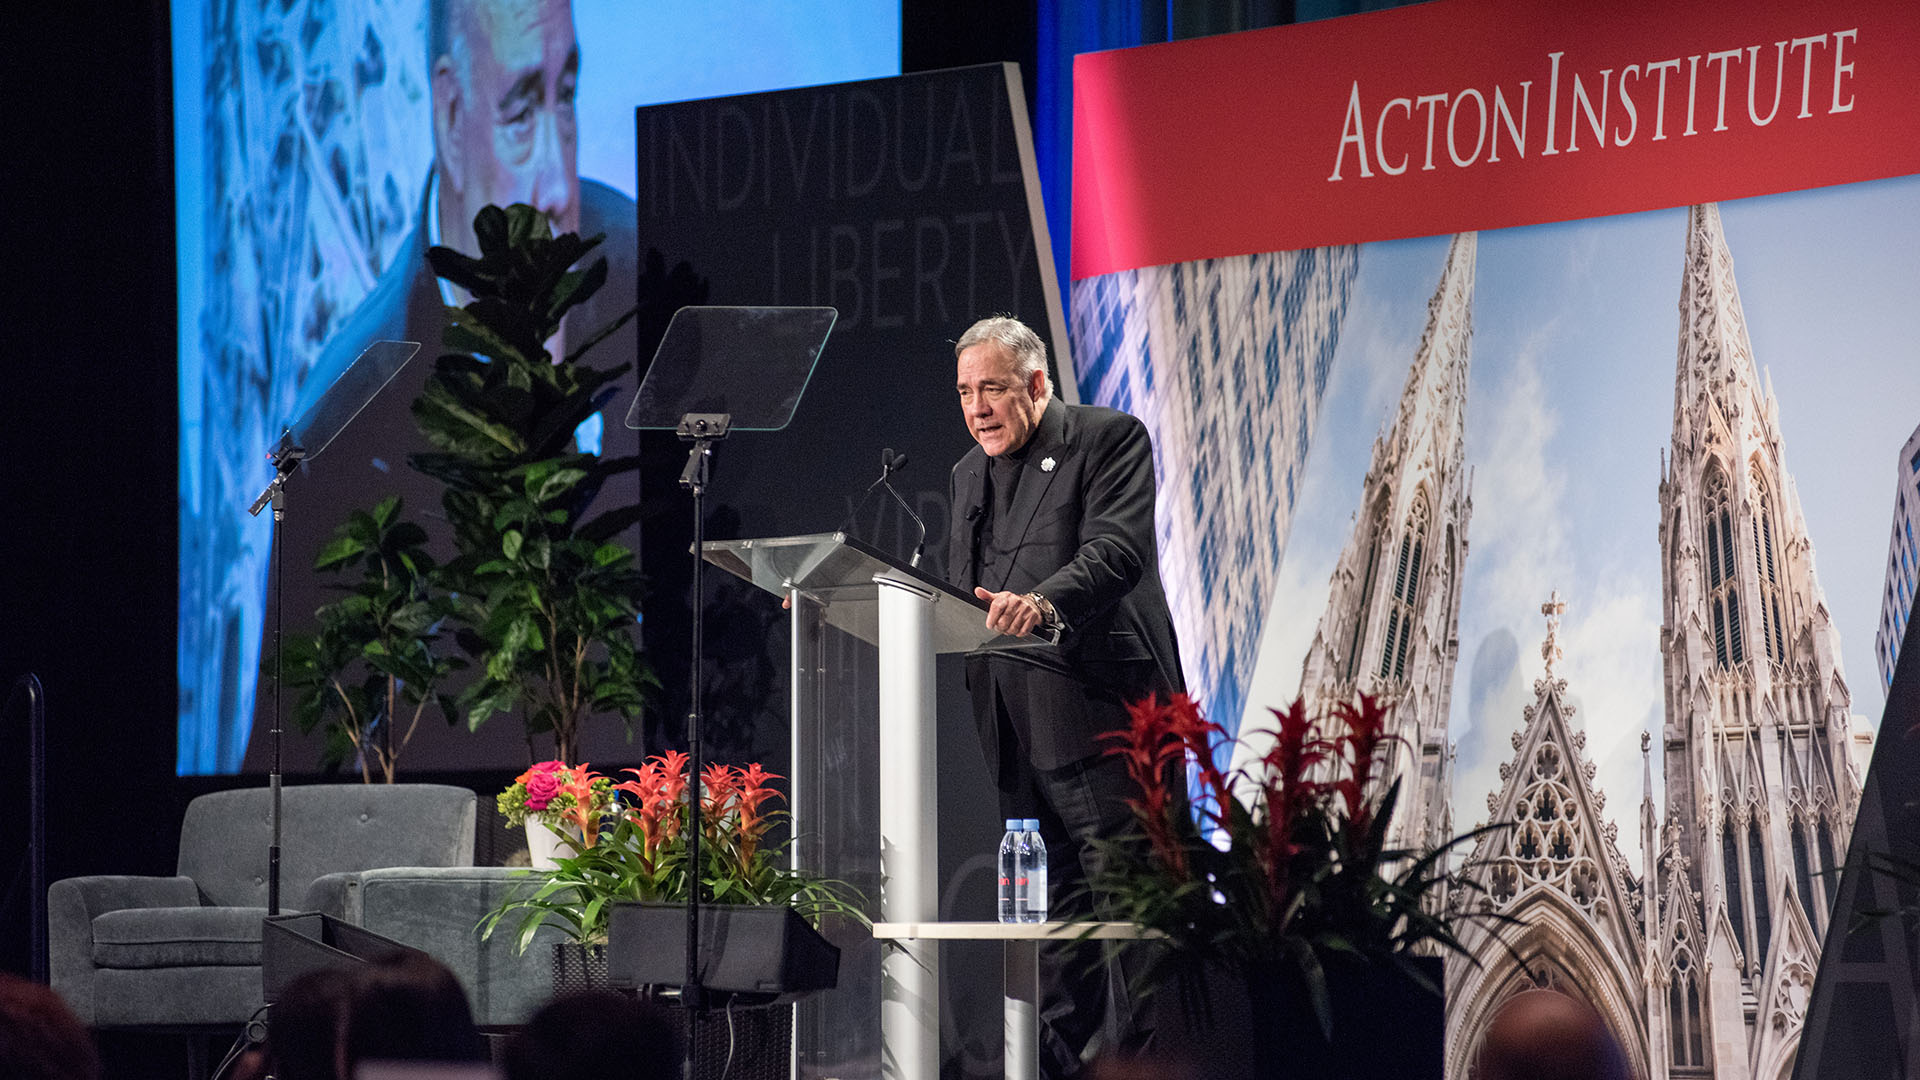 Rev. Robert A. Sirico at AU 2019